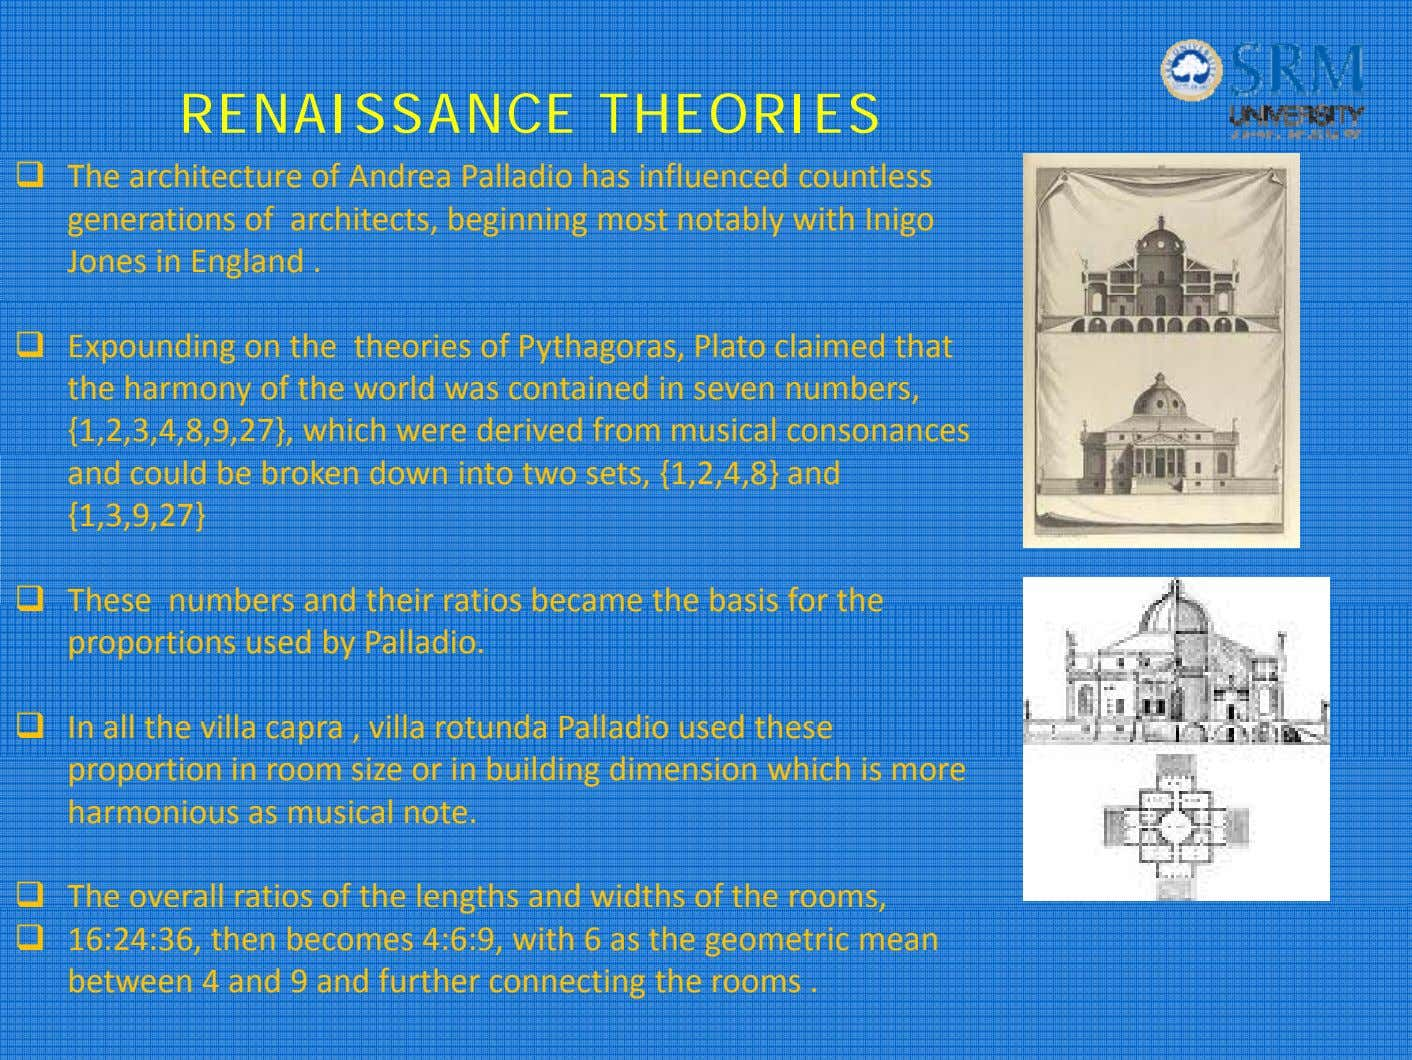 RENAISSANCE THEORIES The architecture of Andrea Palladio has influenced countless generations of architects, beginning